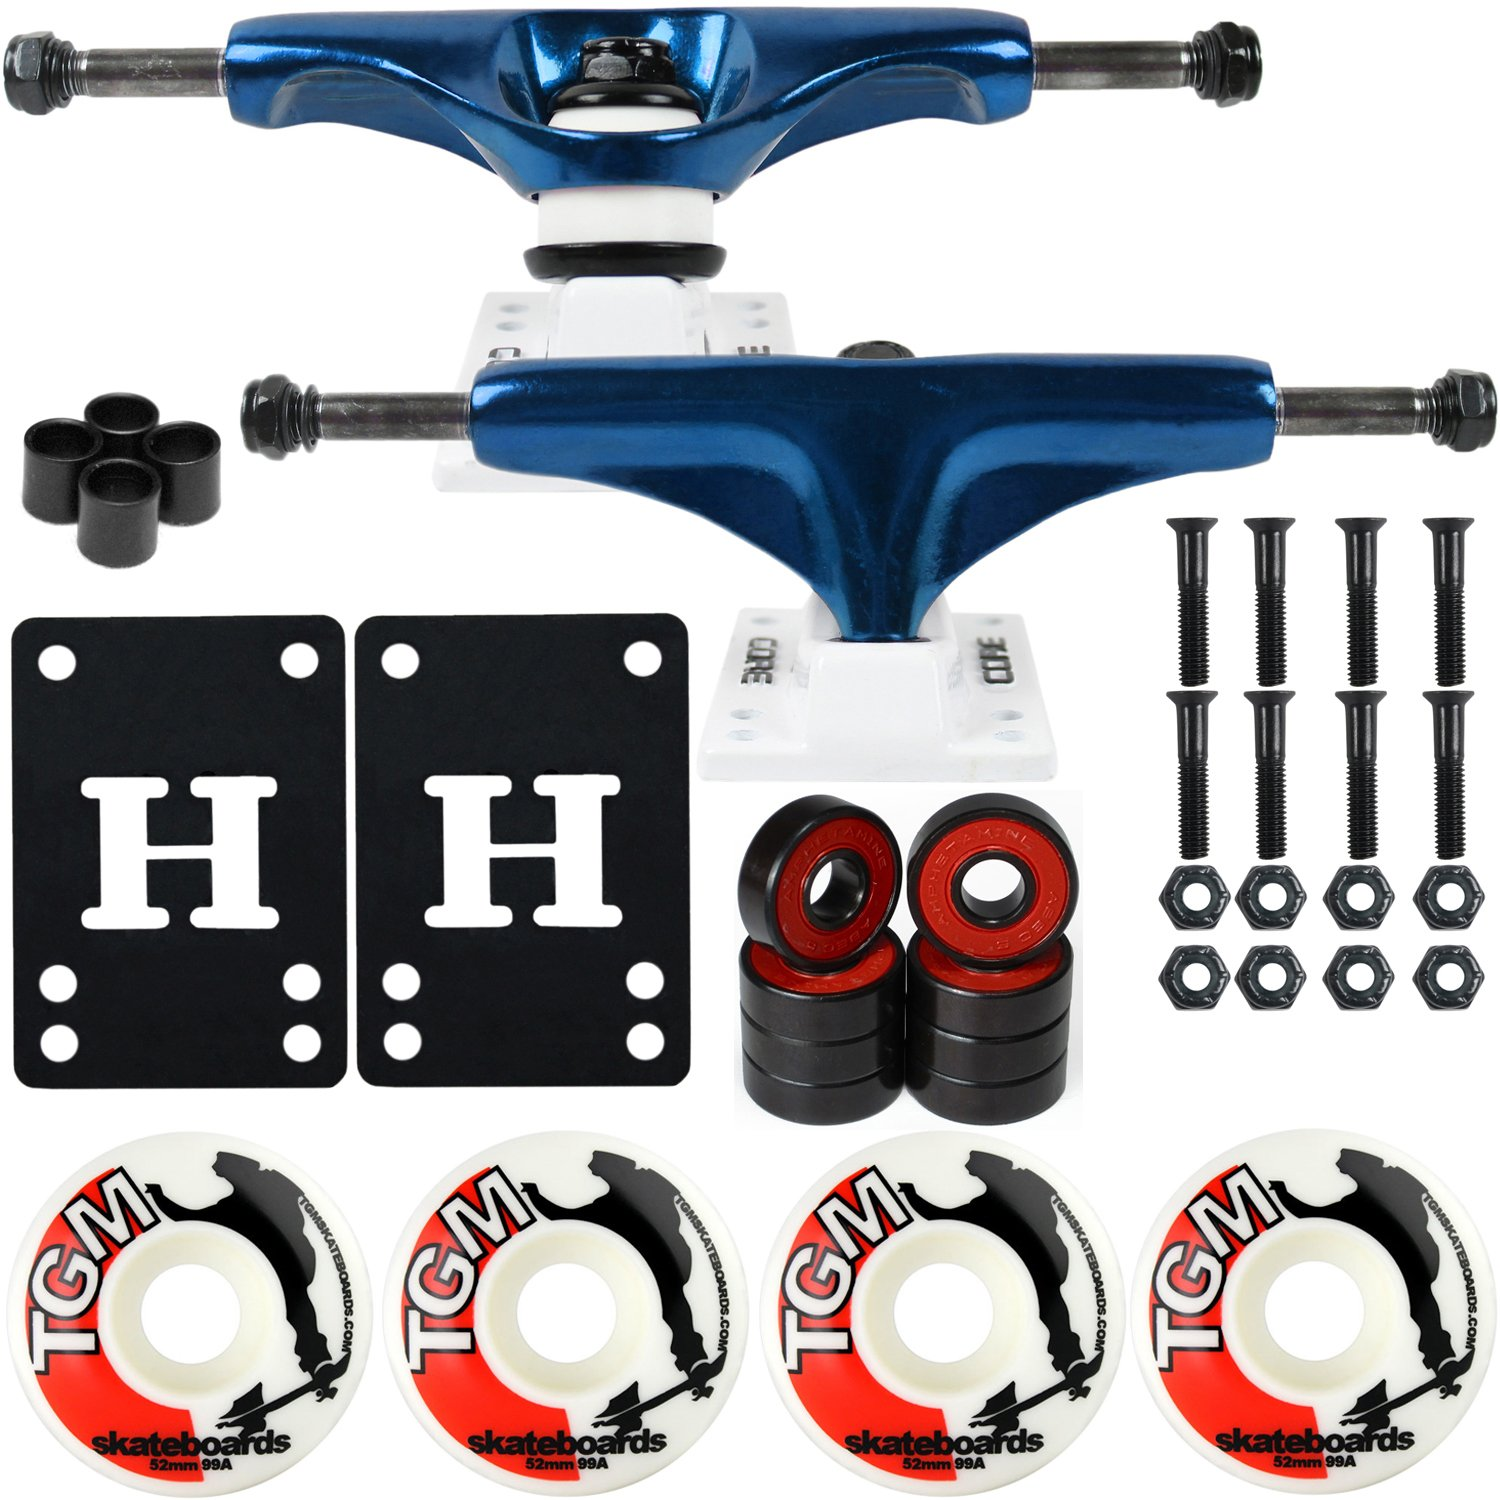 CORE Skateboard Package 5.0'' Trucks 52mm with White Wheels + Components (Metallic Blue Hanger/White Base) by CORE